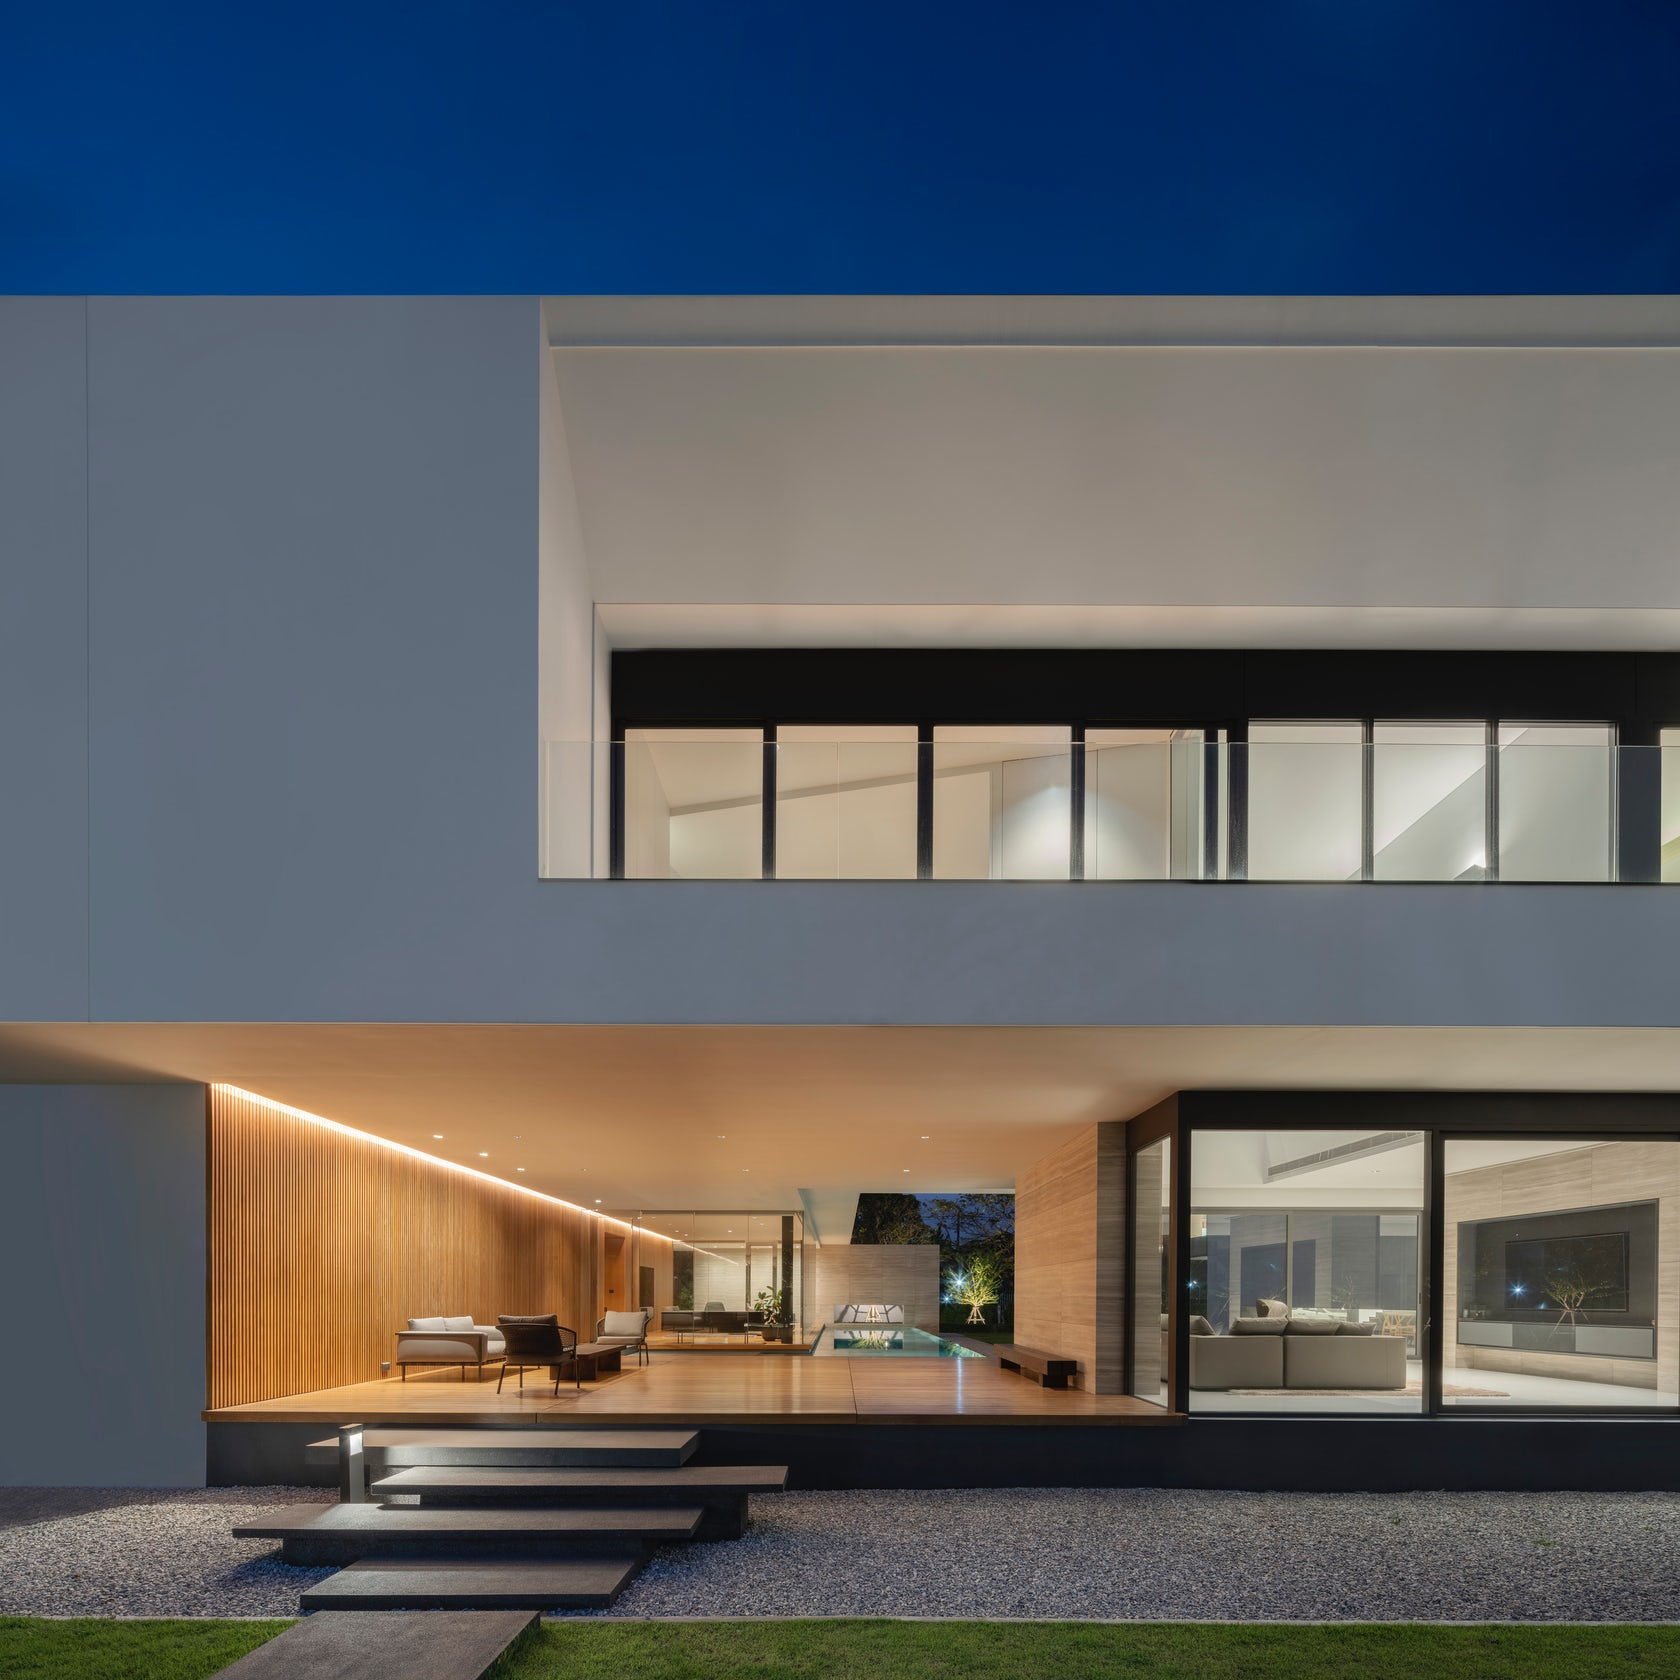 © Architects 49 House Design Limited